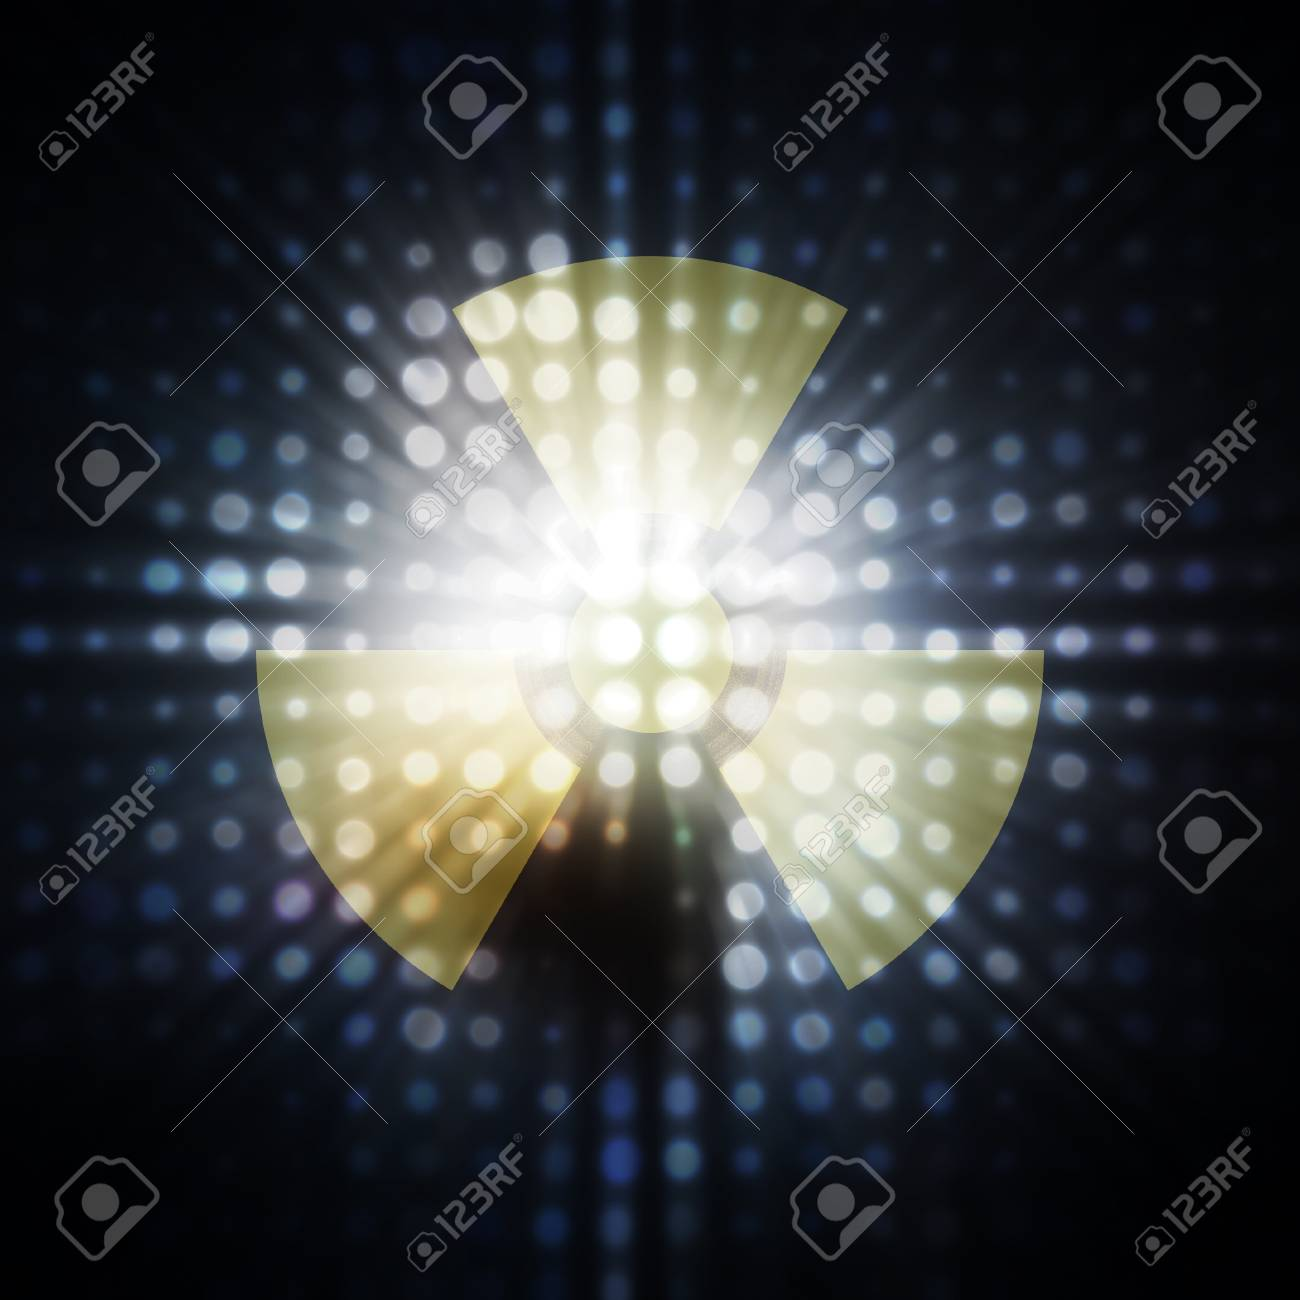 Sign on radioactive danger against light radiation Stock Photo - 9280851